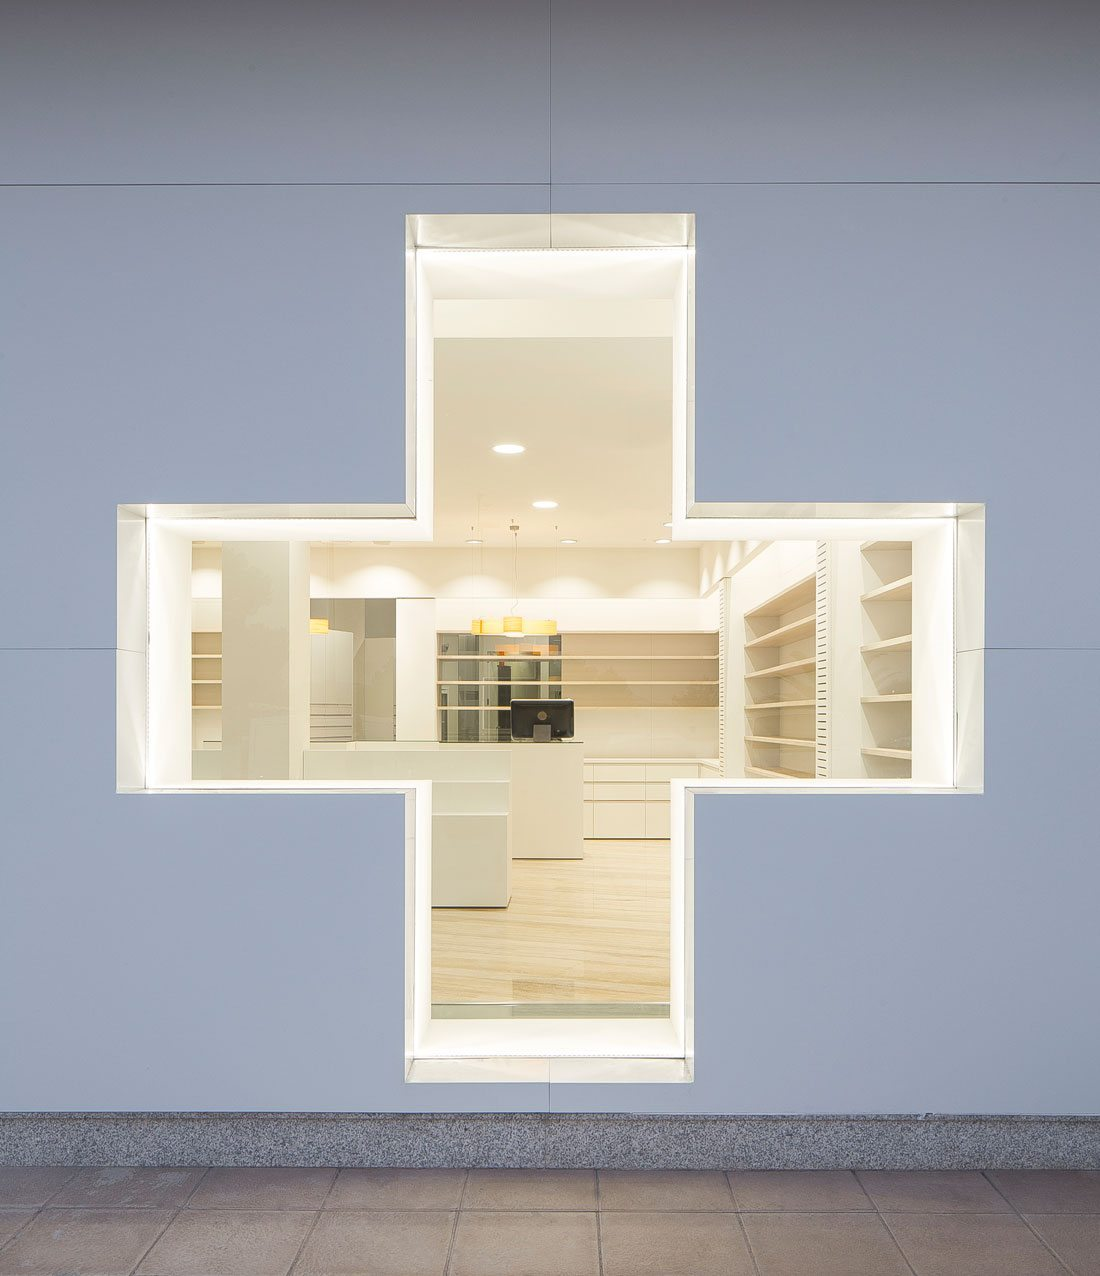 farmacia coloma. escaparate con forma de cruz.